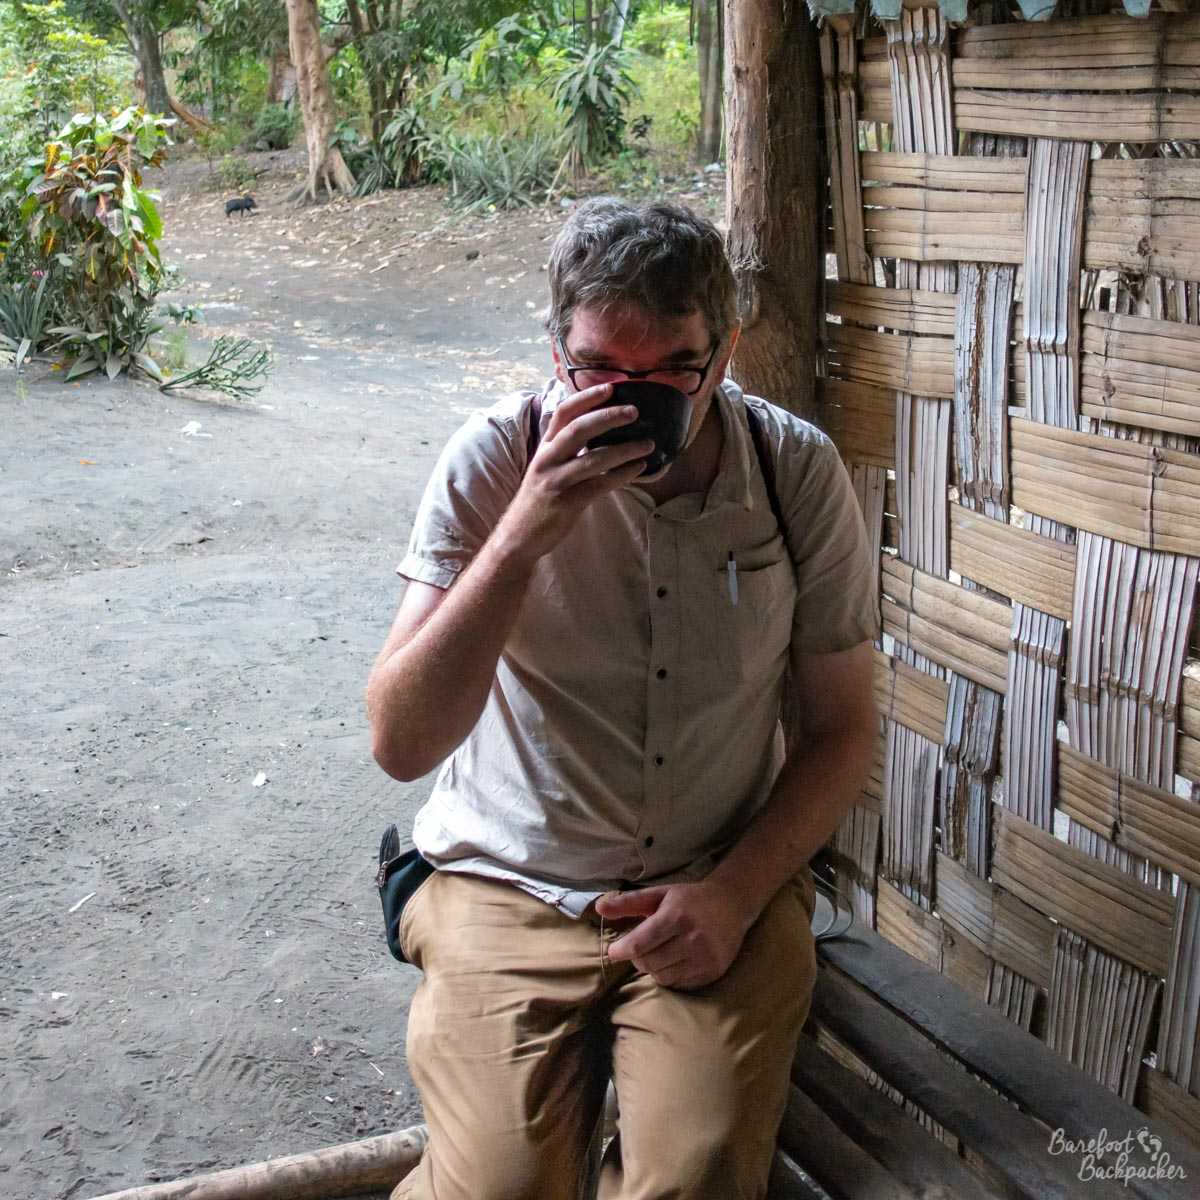 The Barefoot Backpacker drinking kava.